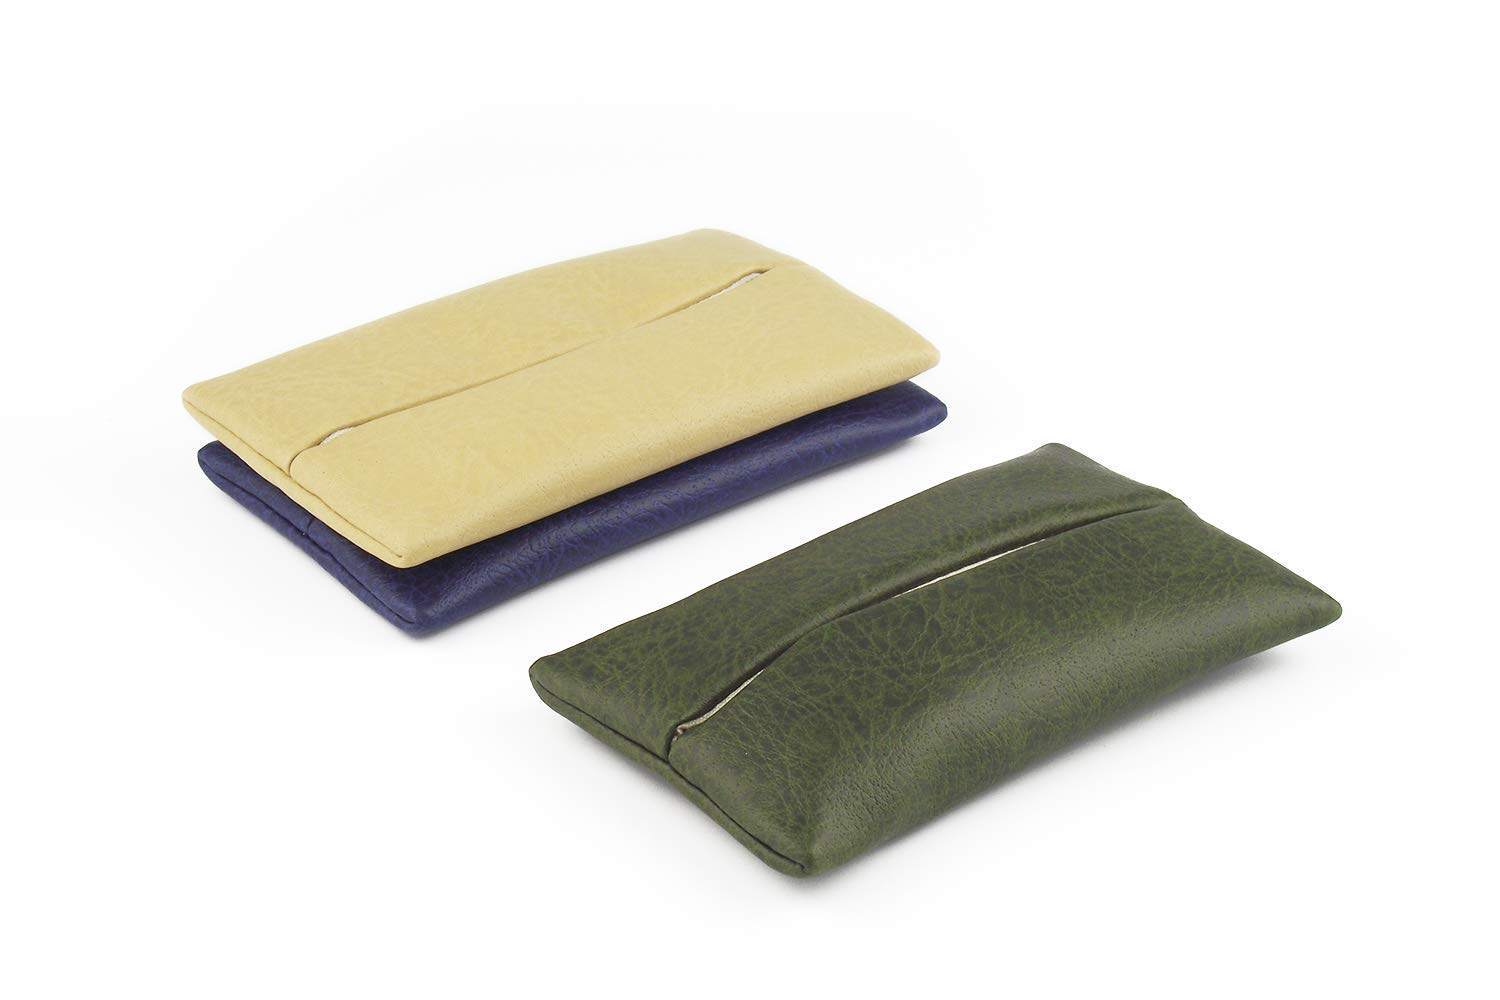 「Thing.Is」PU Leather Pocket Tissue Cover, Travel Tissue Holder for Purse, Portable Tissue Case, Tissue Pouch, Begie/Army Green/Dark Blue